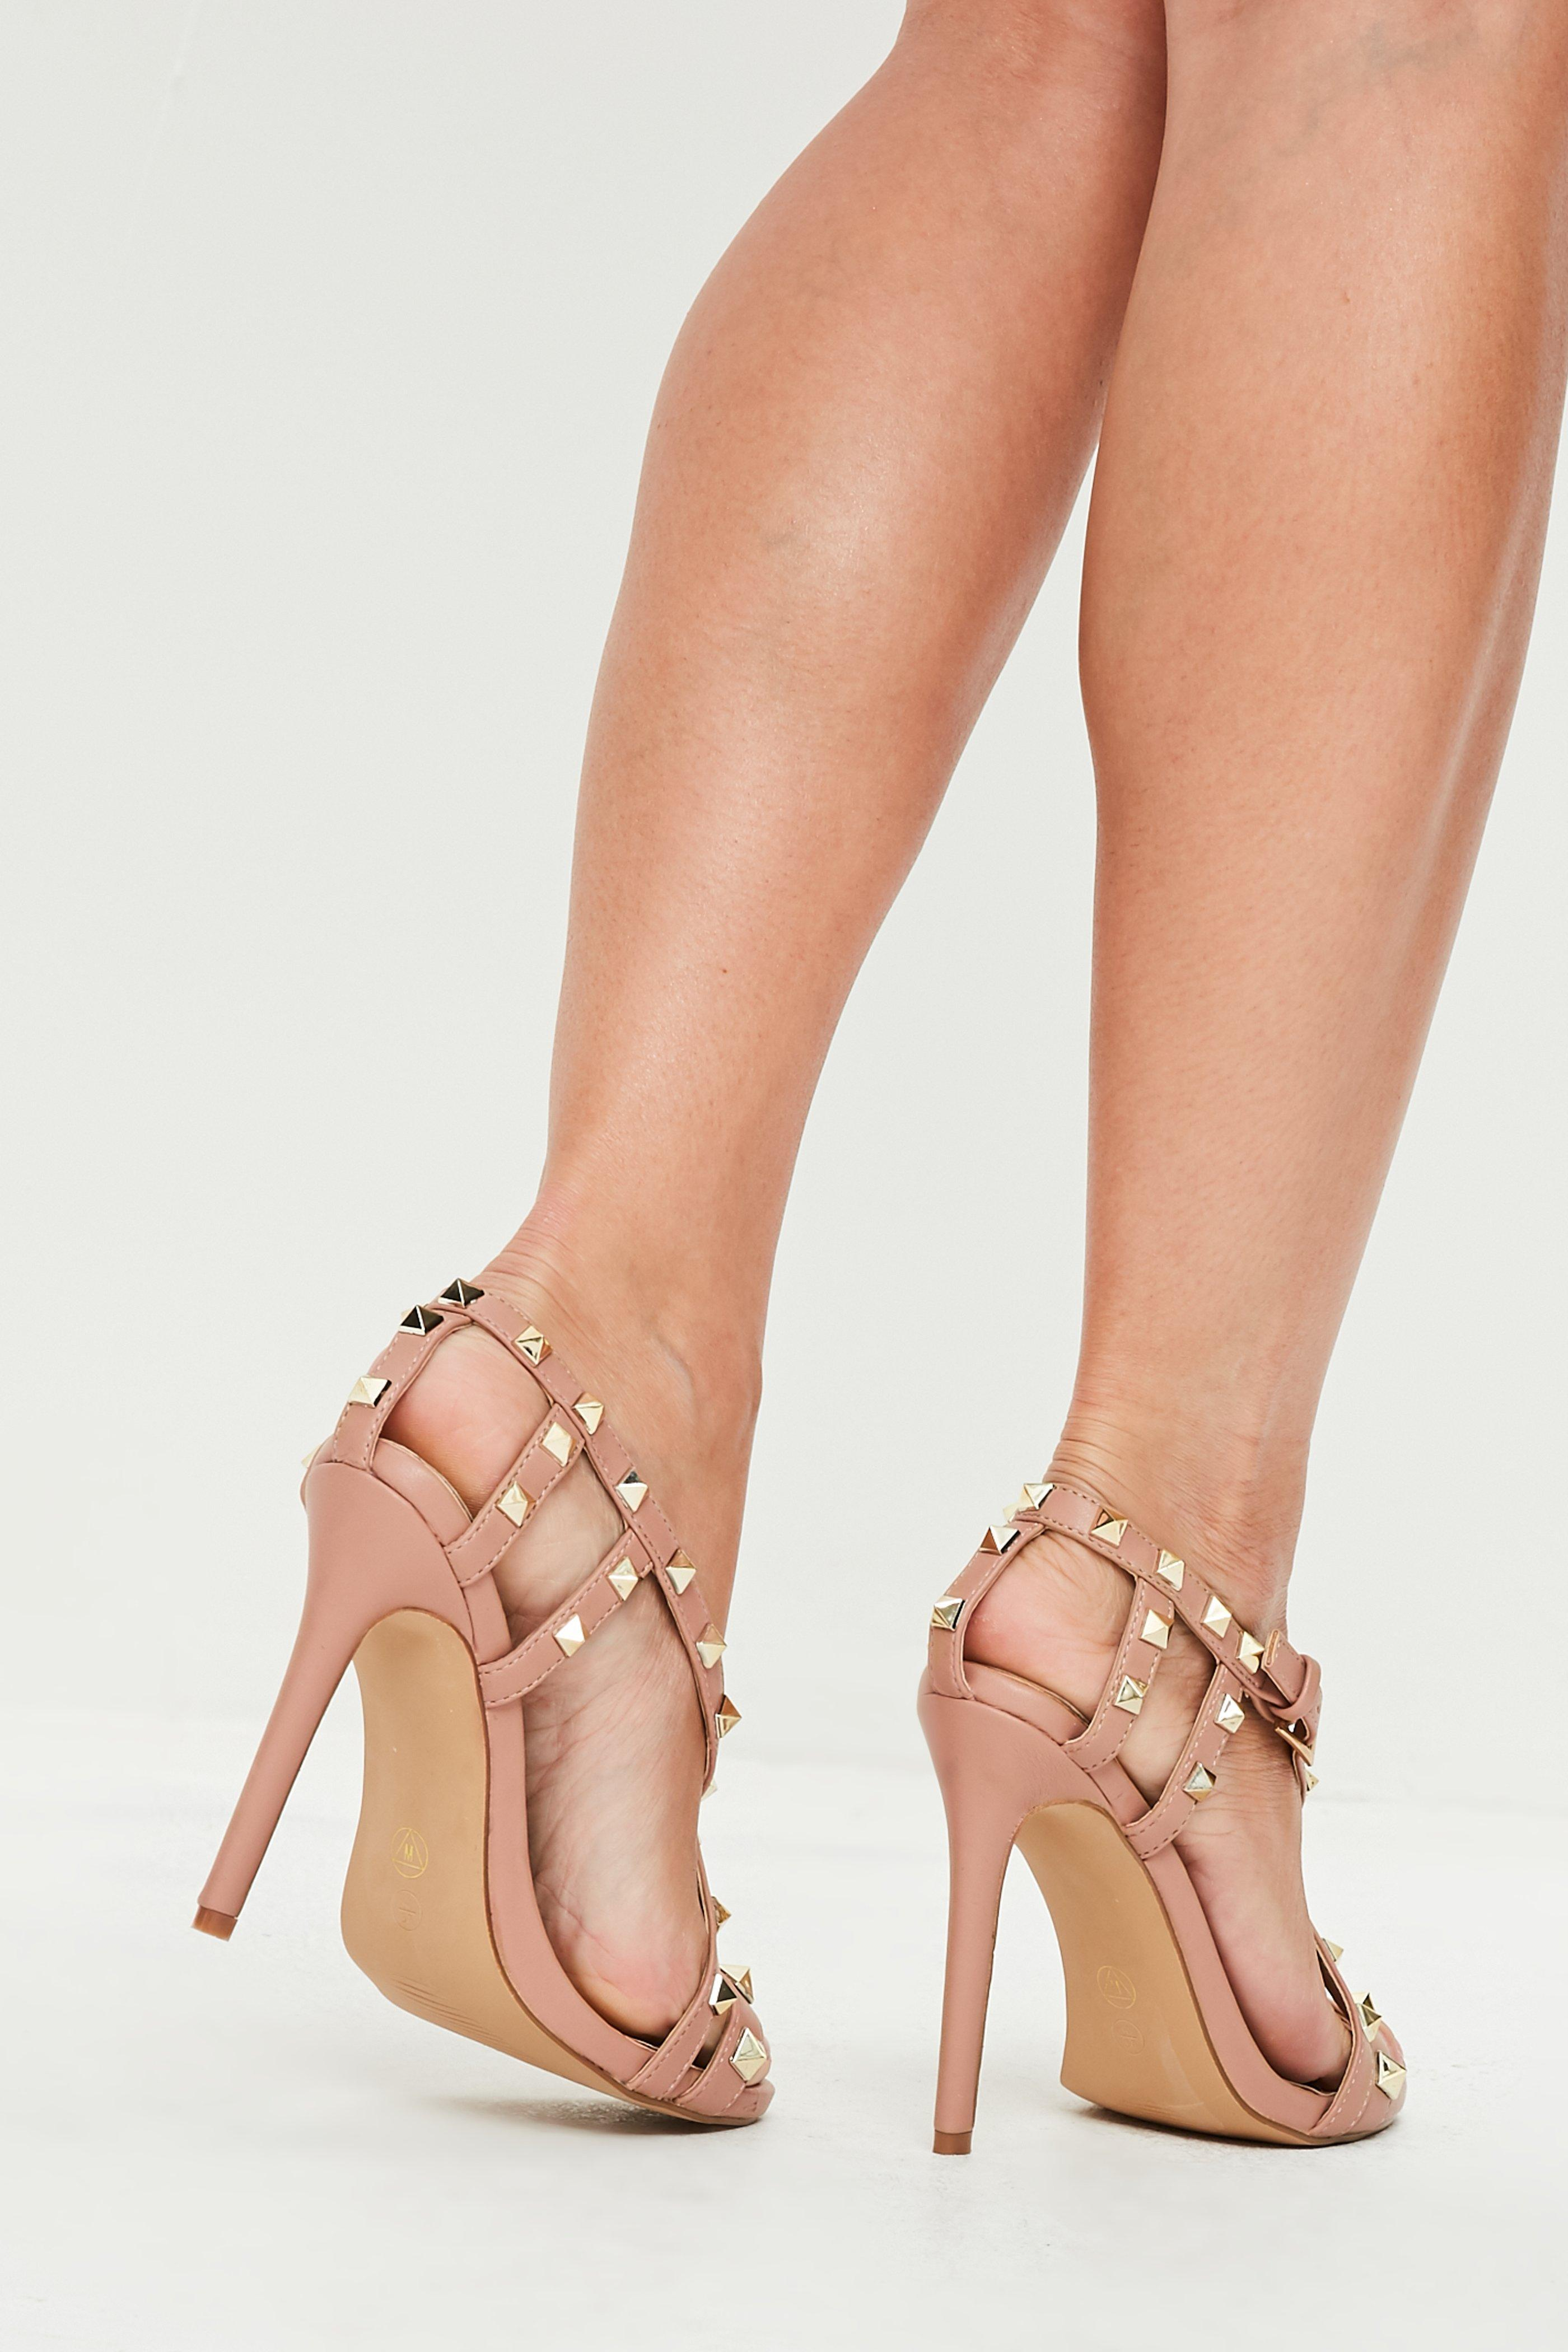 535dc22d2f28 Lyst - Missguided Nude Pyramid Cross Strap Heeled Sandals in Natural